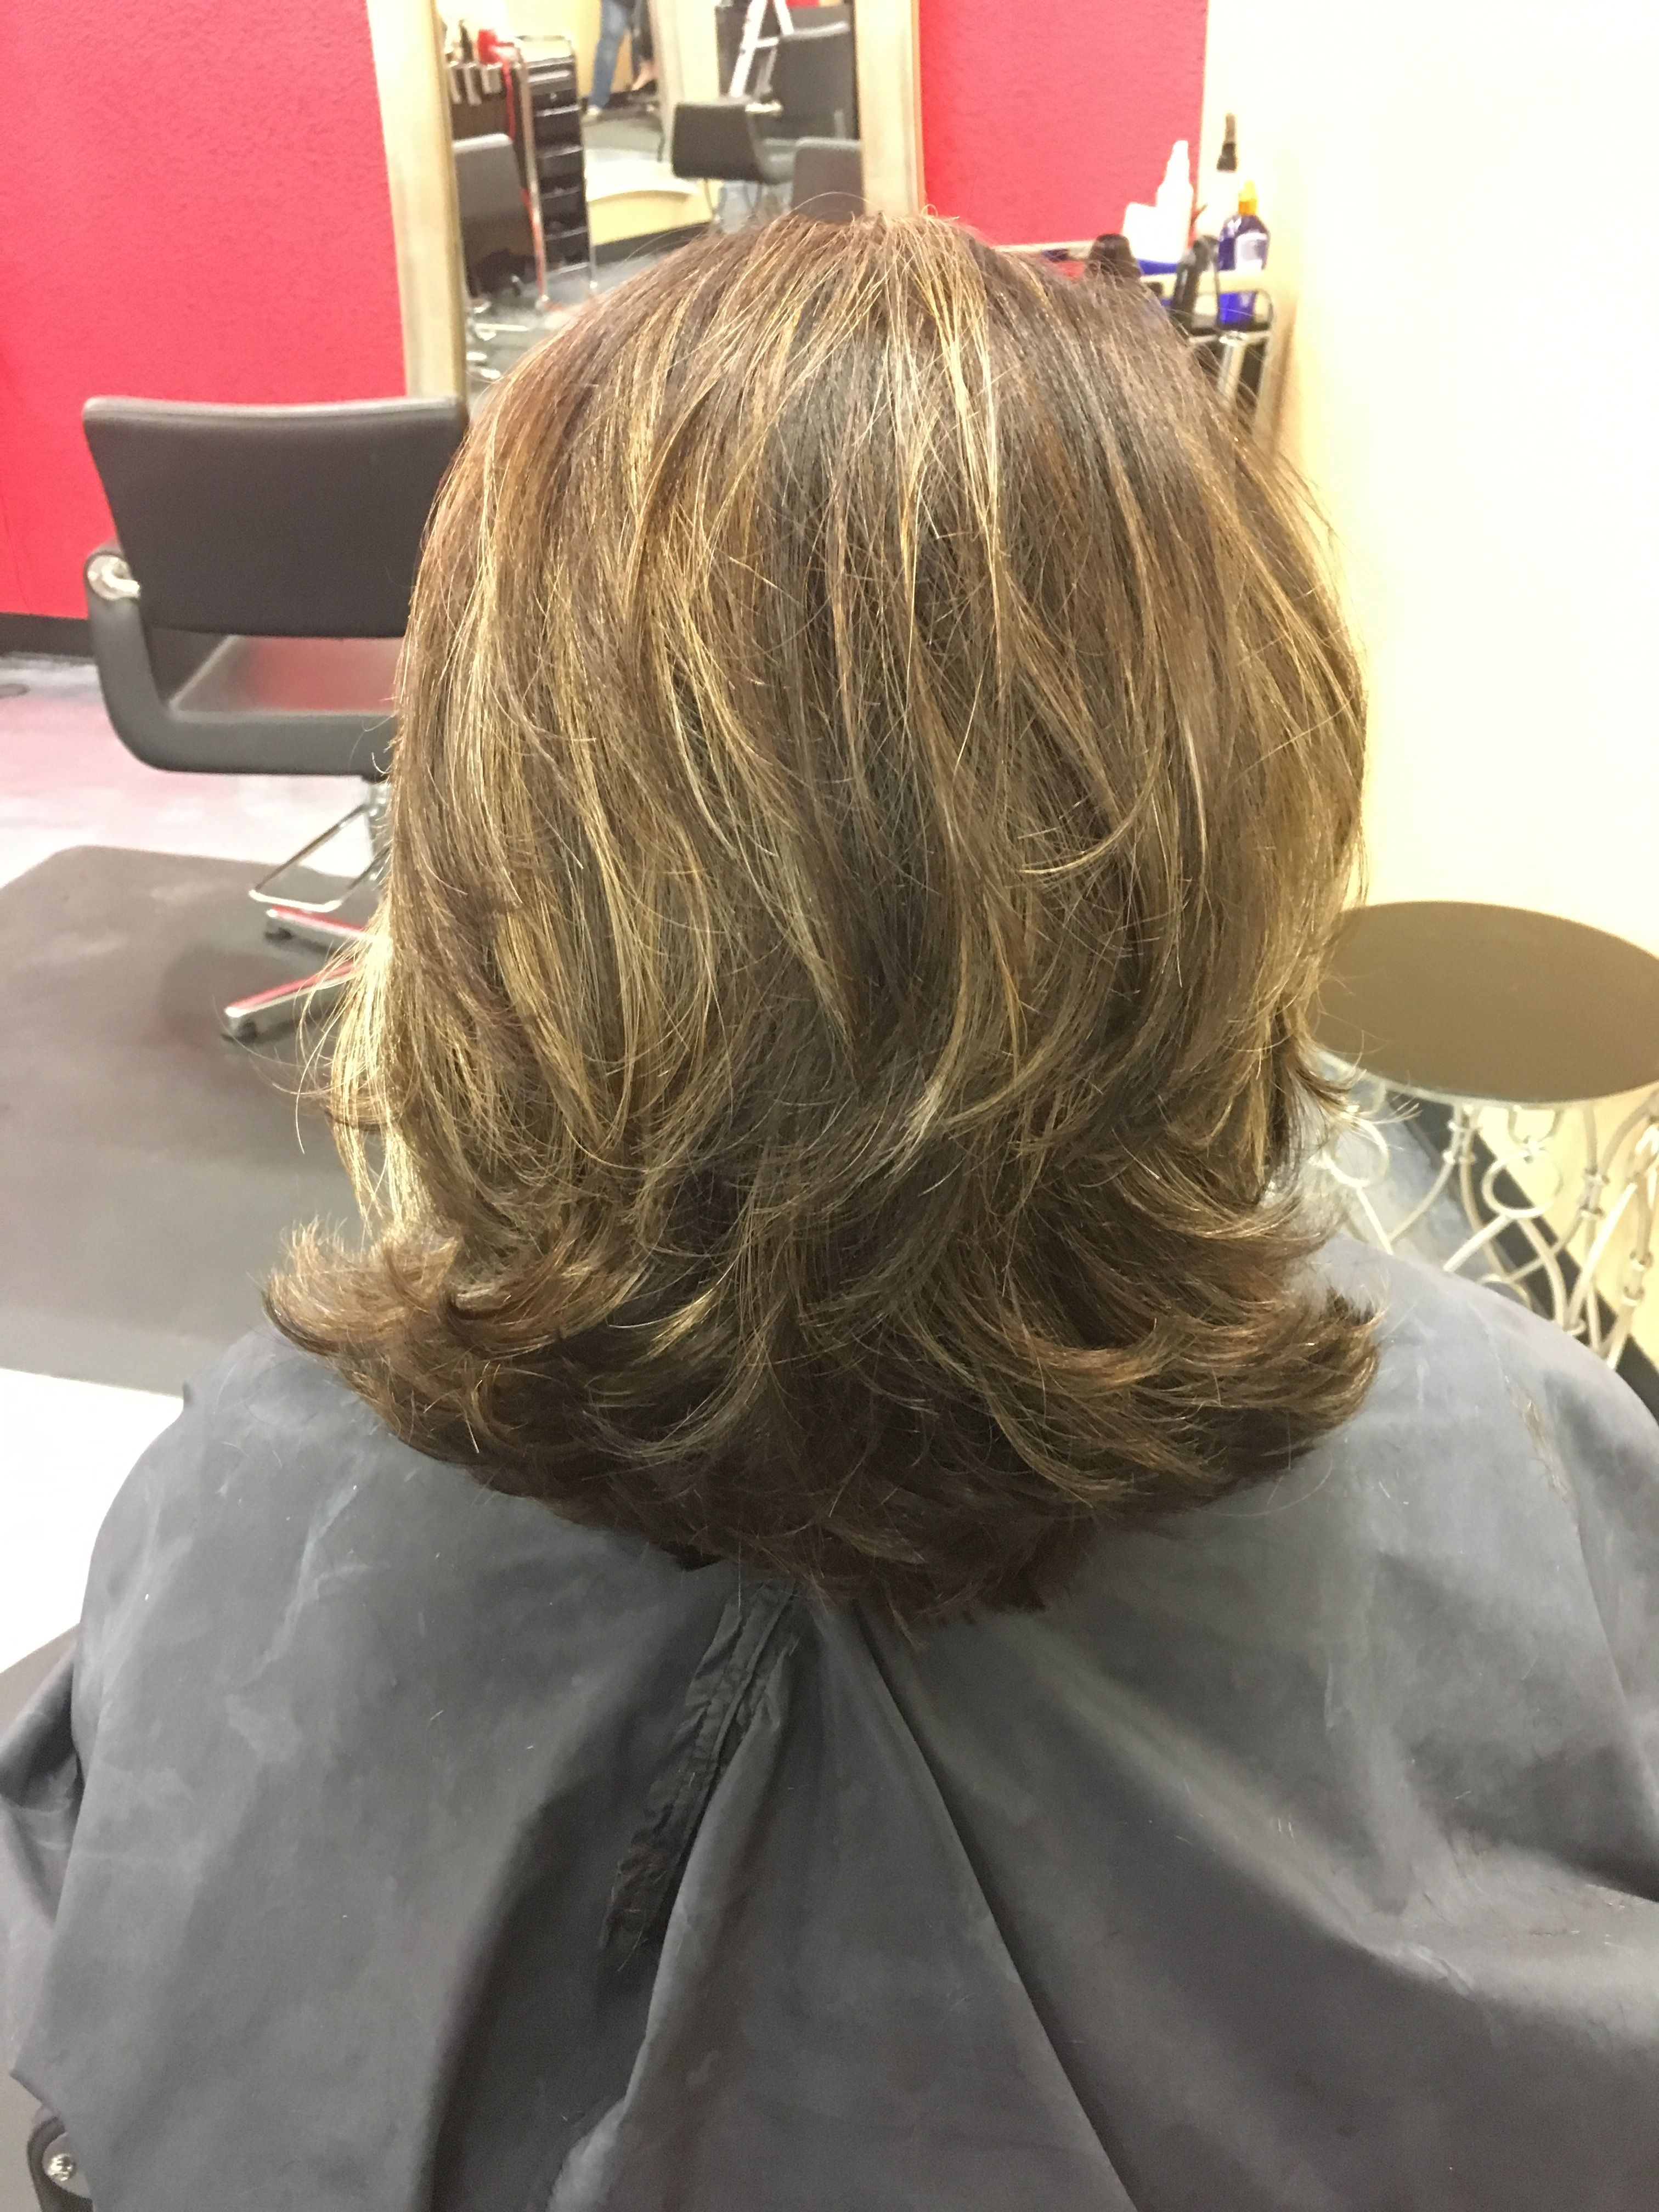 The Back Of My New Do Coming Away From An Abrupt Ombre Nice Subtle High And Low Lights The Fixx Las Cruces High And Low Lights Low Lights Hair